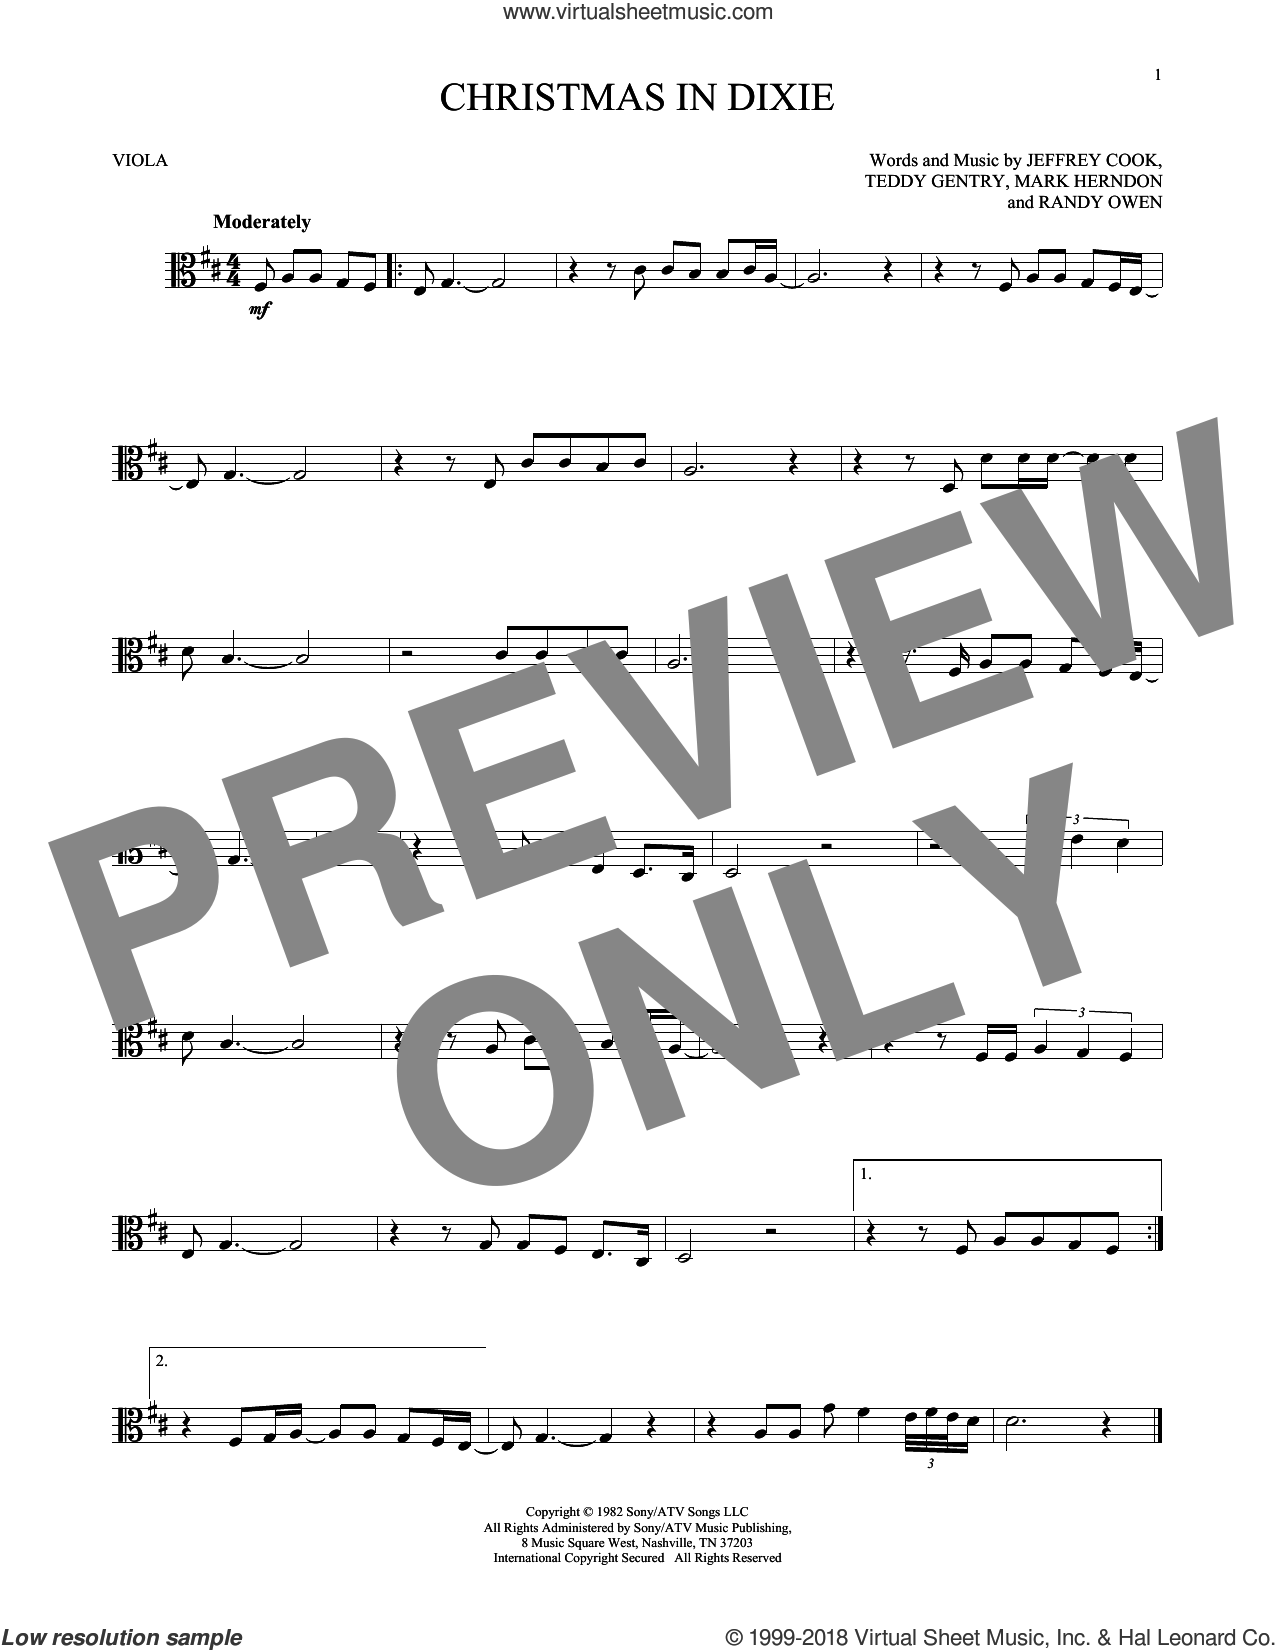 Christmas In Dixie sheet music for viola solo by Alabama, Jeffrey Cook, Mark Herndon, Randy Owen and Teddy Gentry, intermediate skill level